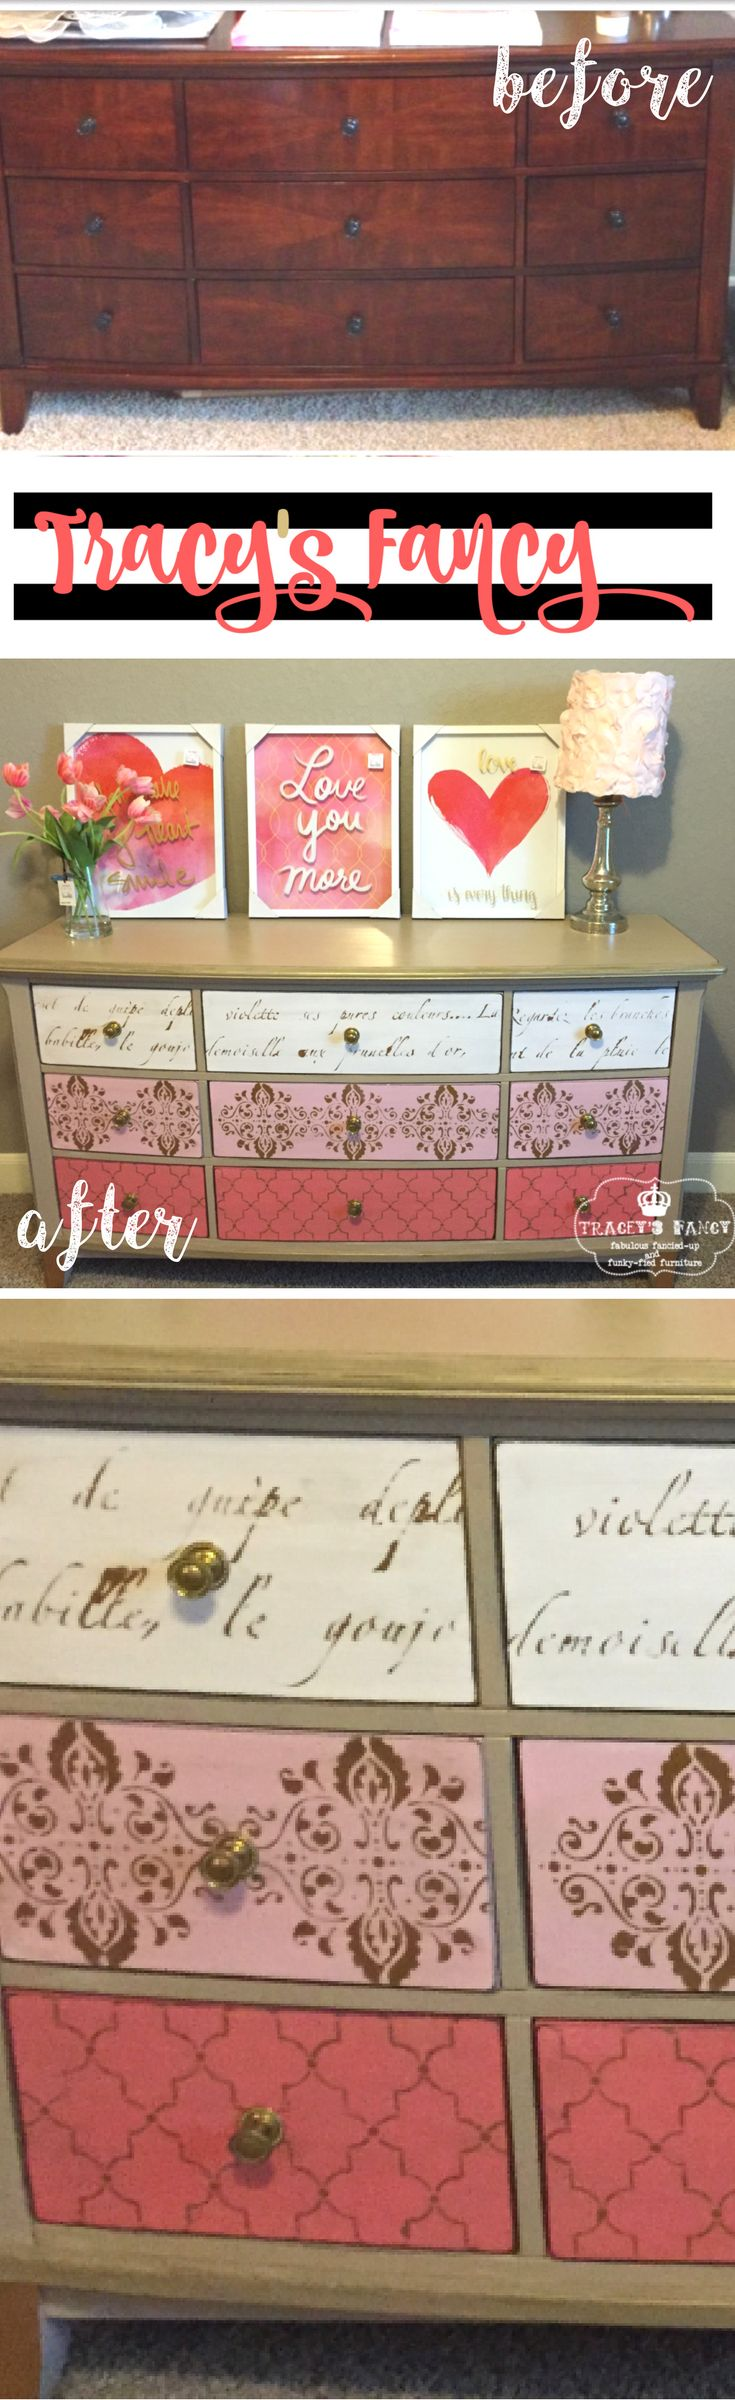 Pink & Gold Dresser with mixed gold stencils | DIY Furniture Makeover by Tracey's Fancy | Furniture Painting Tips & Gorgeous Paint Combos